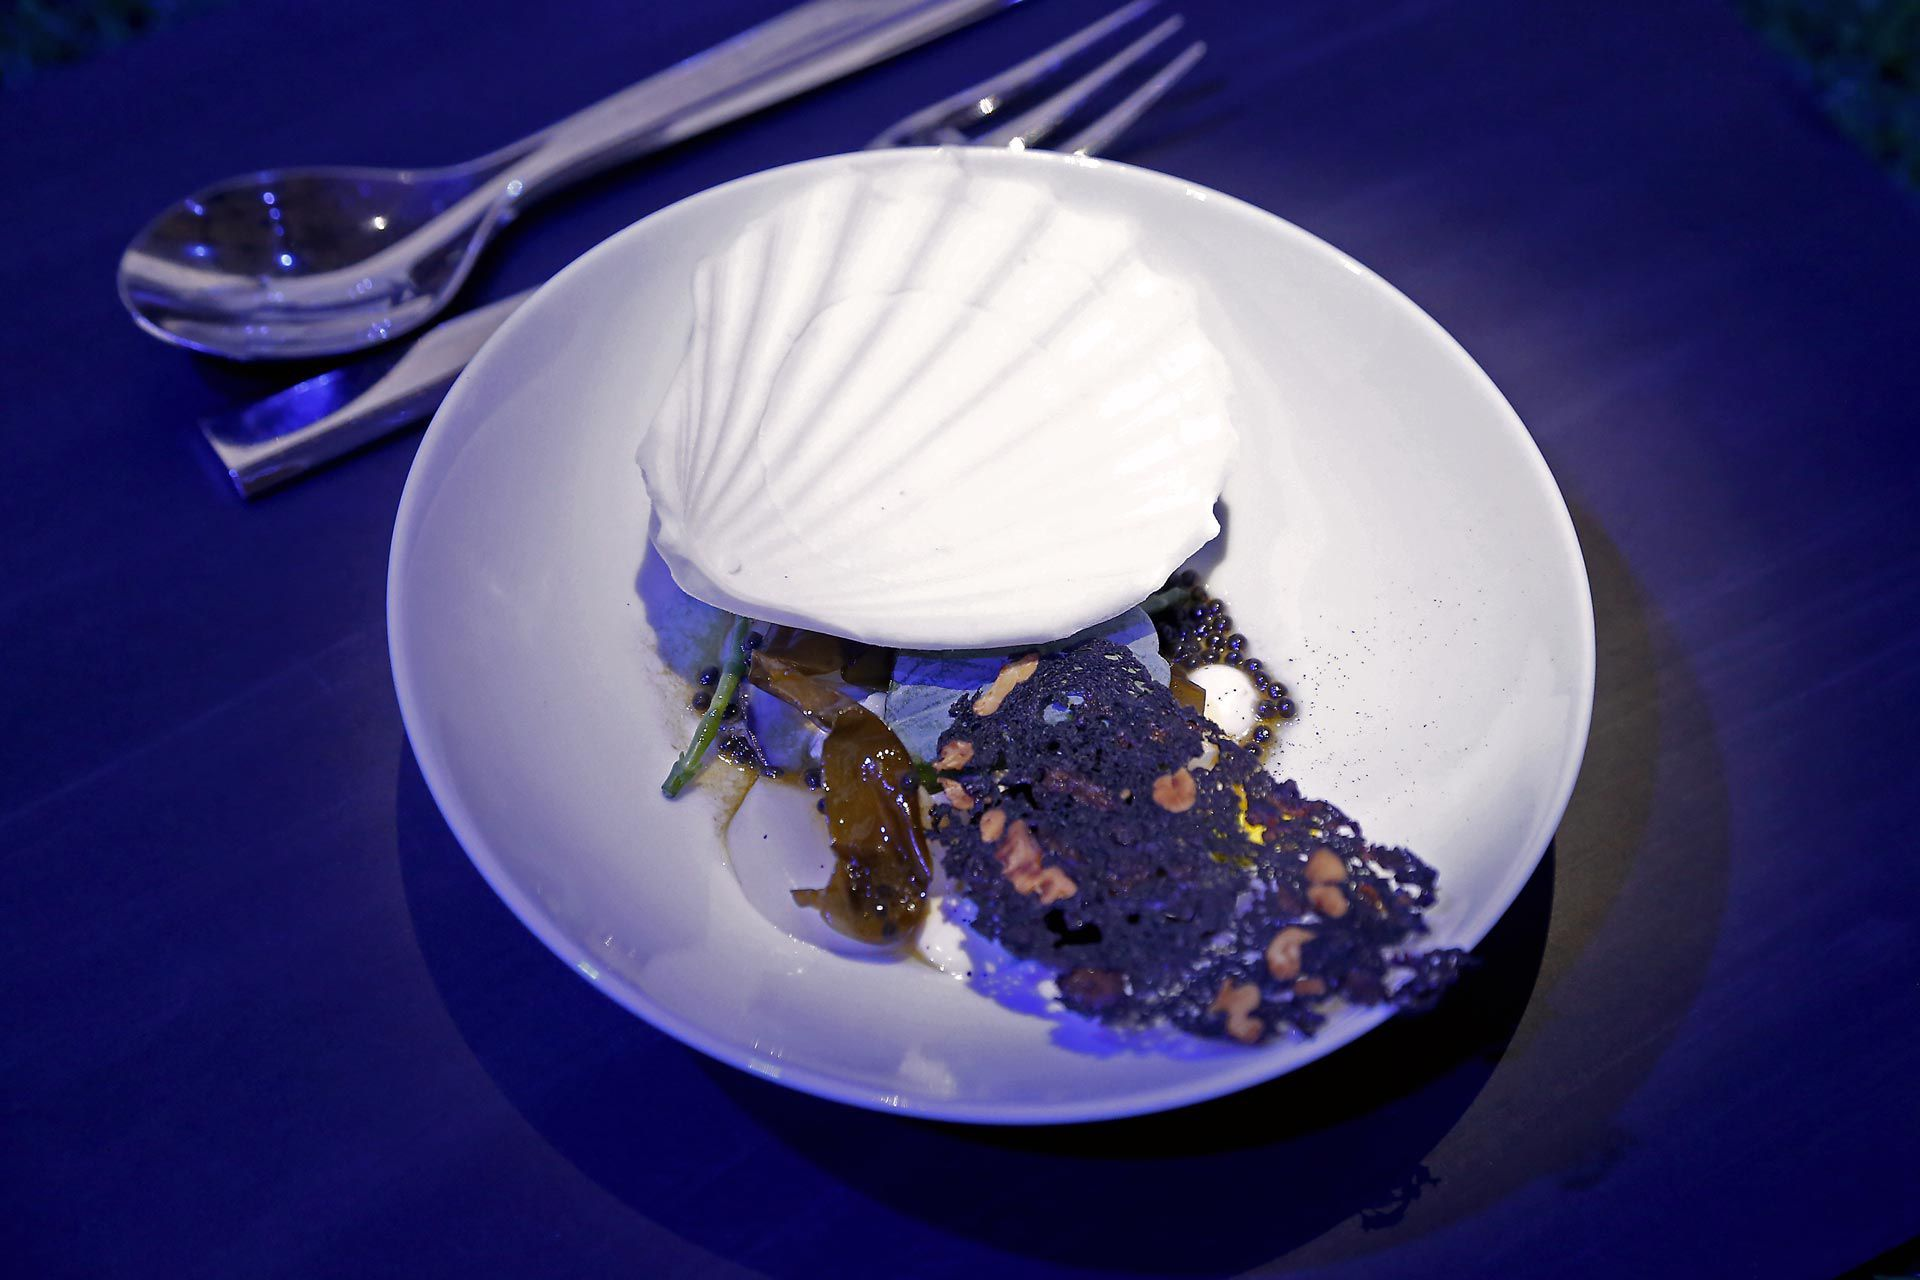 A BIRD, A SEA, A JOURNEY - Tea-weed oyster & Scallops melba, Lemon sea sorbet